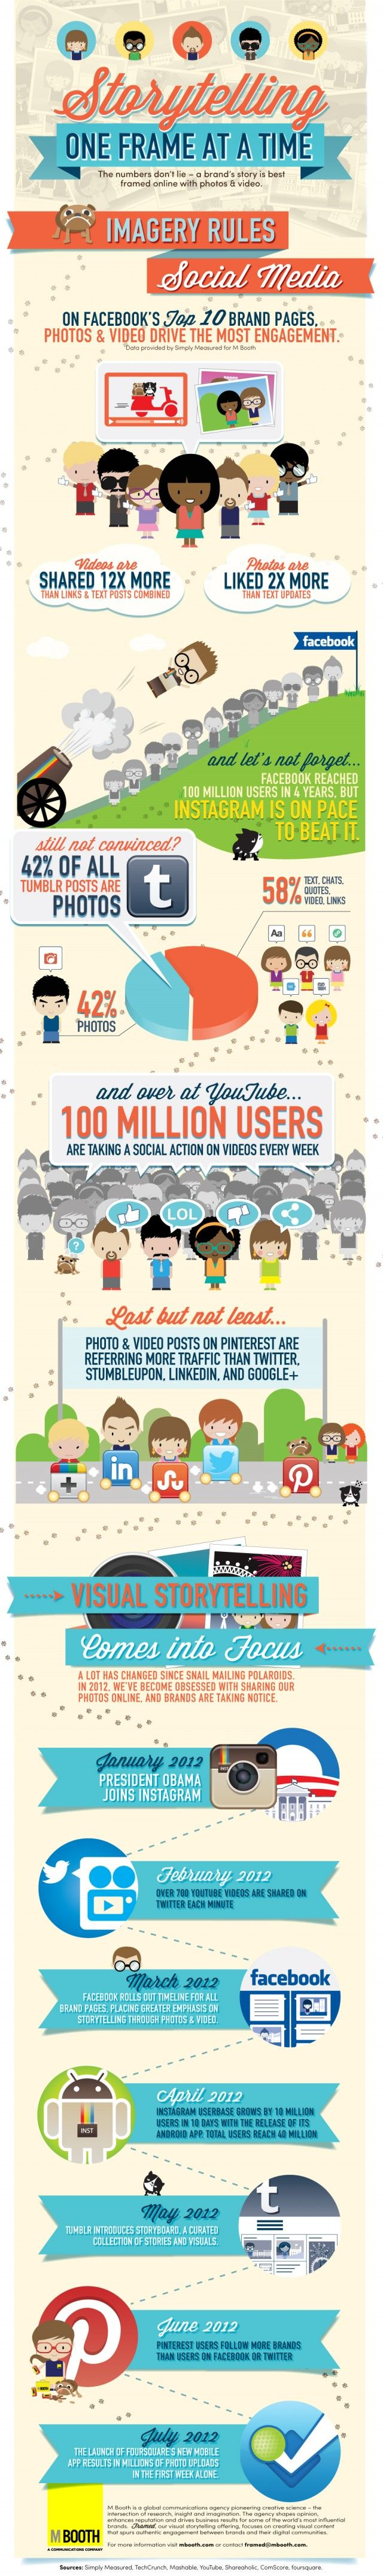 86 best random unclassified images on pinterest air travel visual storytelling via social media infographic fandeluxe Image collections